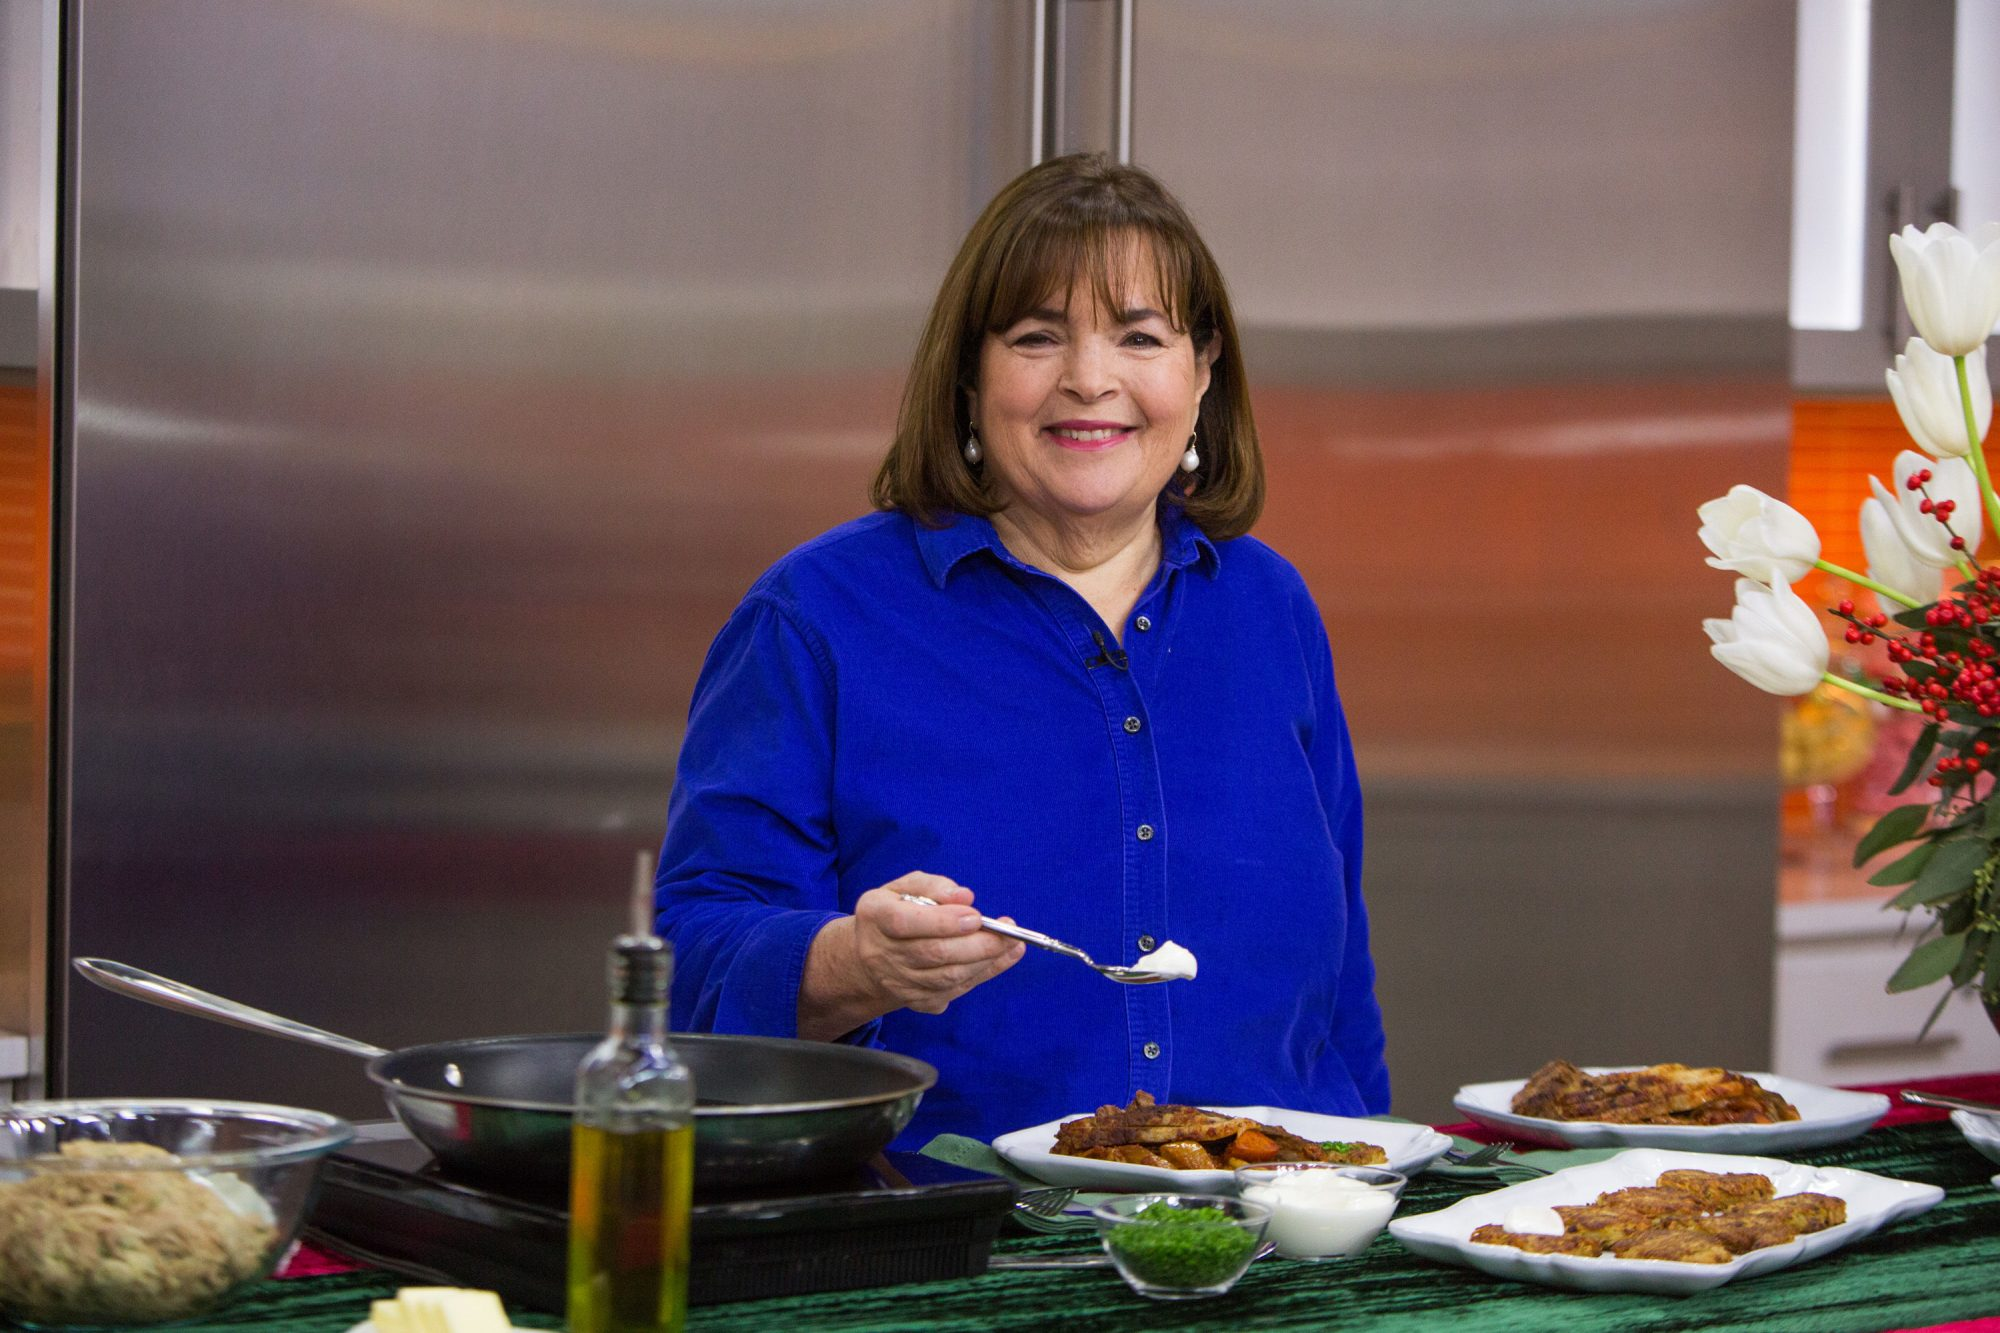 Ina Garten's 'Barefoot Contessa: Cook Like a Pro' Returns in April